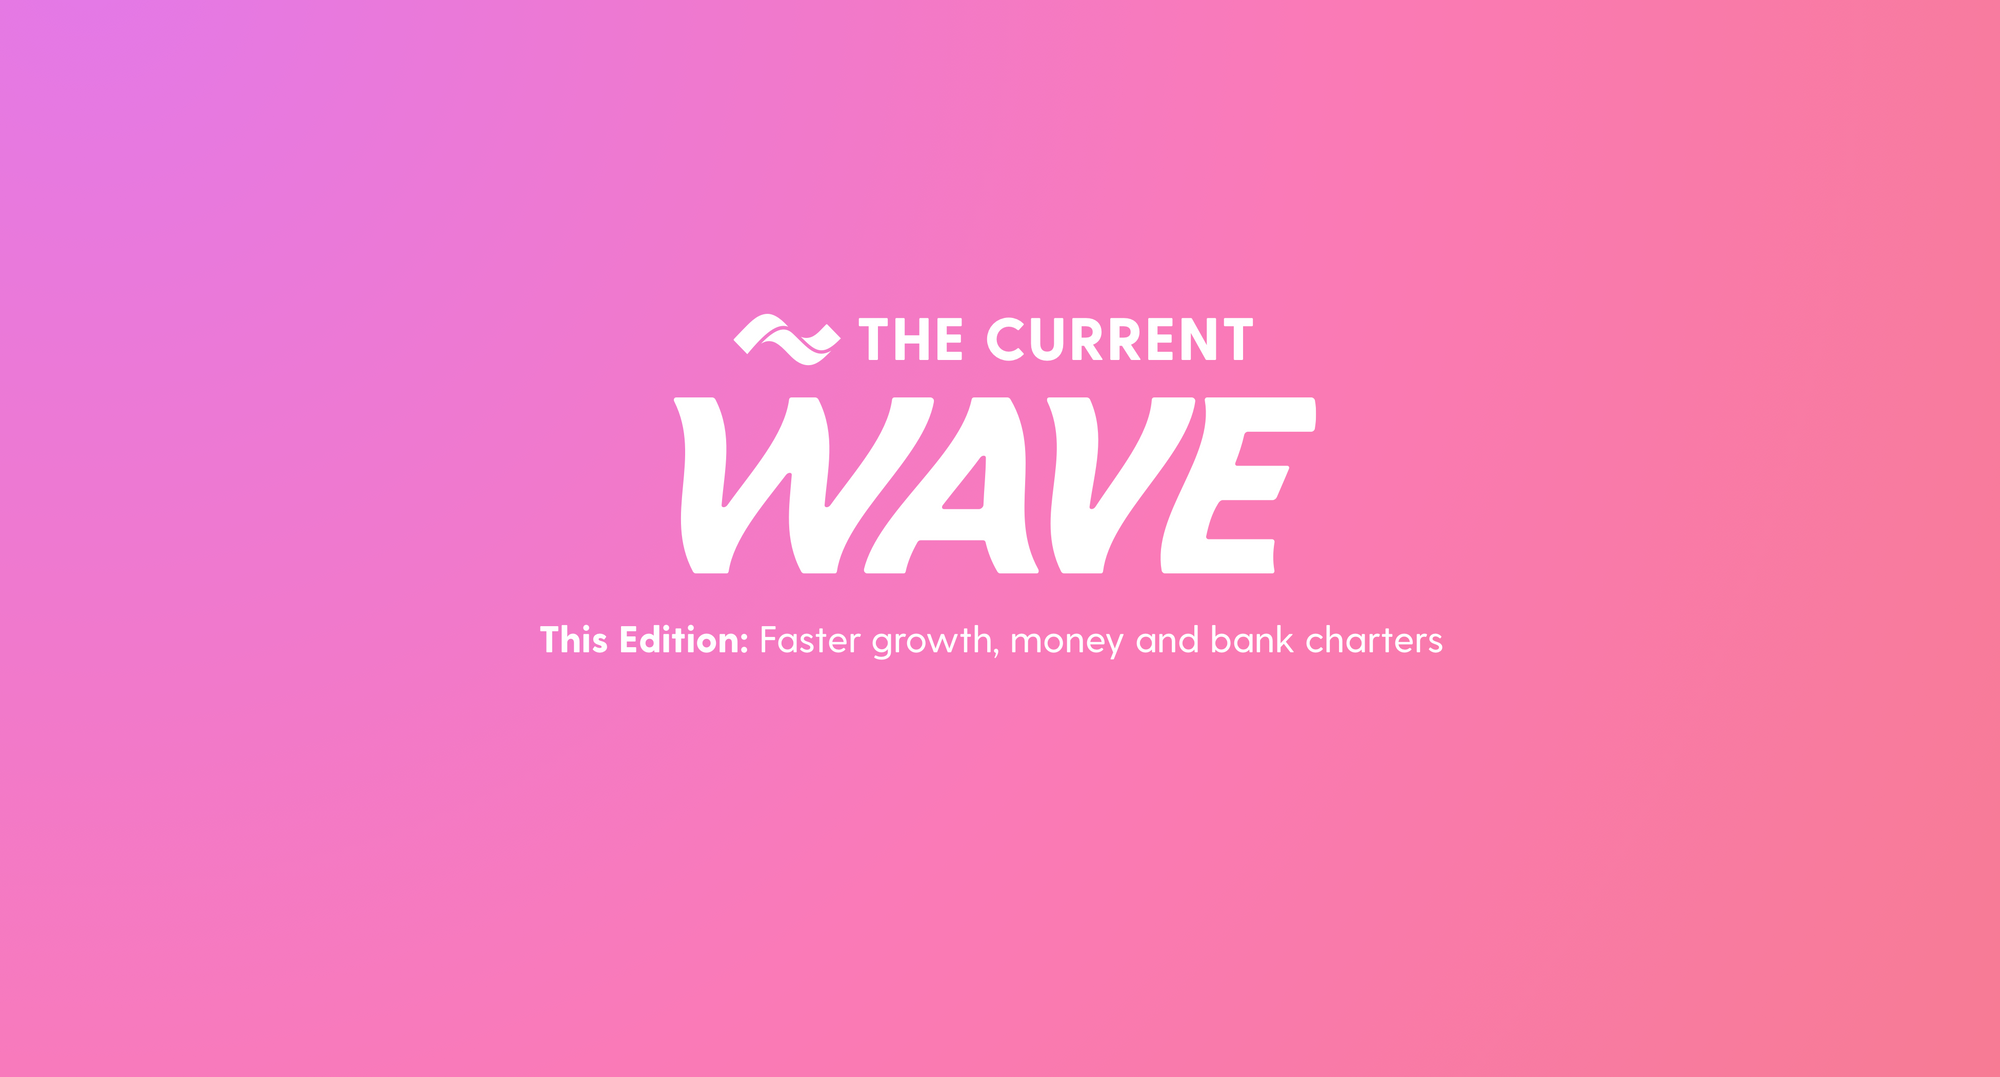 the-current-wave-faster-growth-money-and-bank-charters